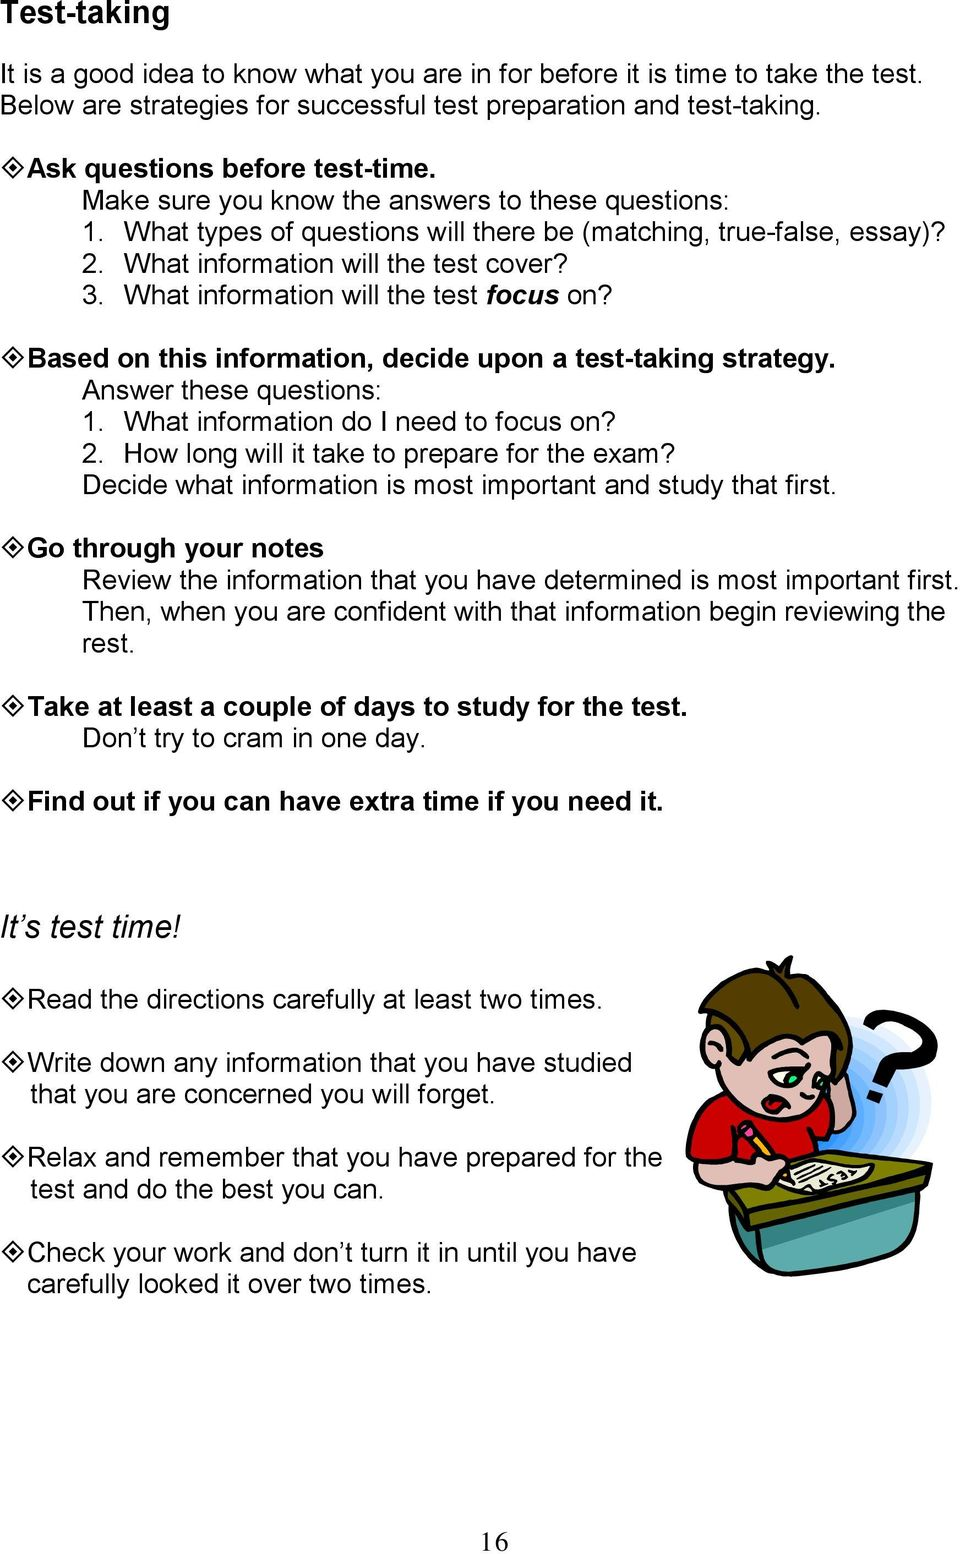 What information will the test focus on? #Based on this information, decide upon a test-taking strategy. Answer these questions: 1. What information do I need to focus on? 2.